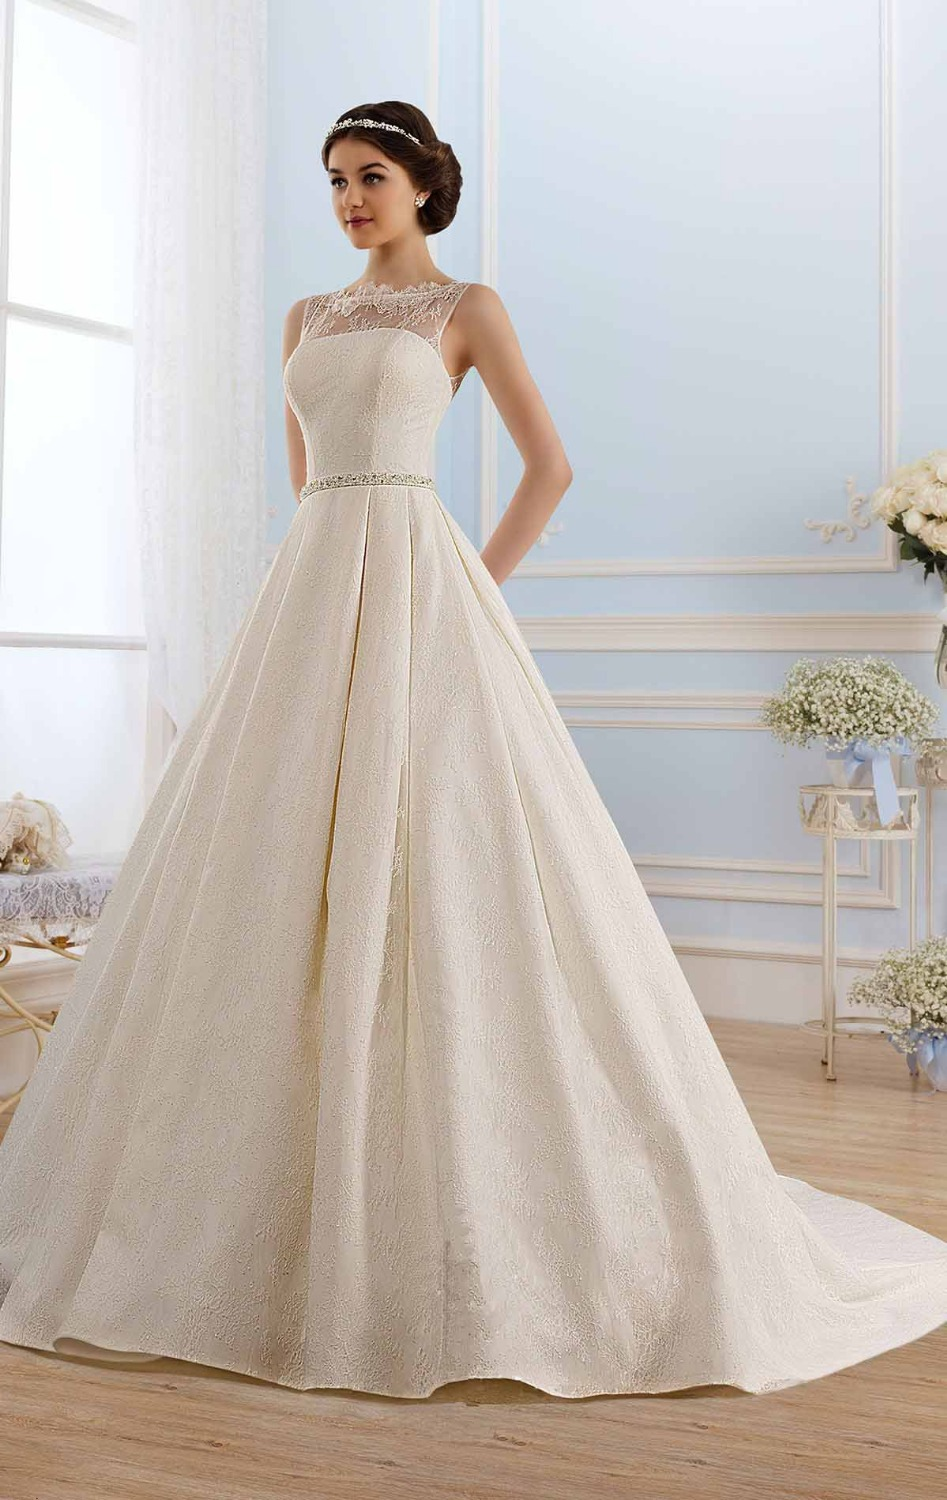 princess wedding dresses south africa princess style wedding dress Wedding Gowns Ball Princess Design Your Dress